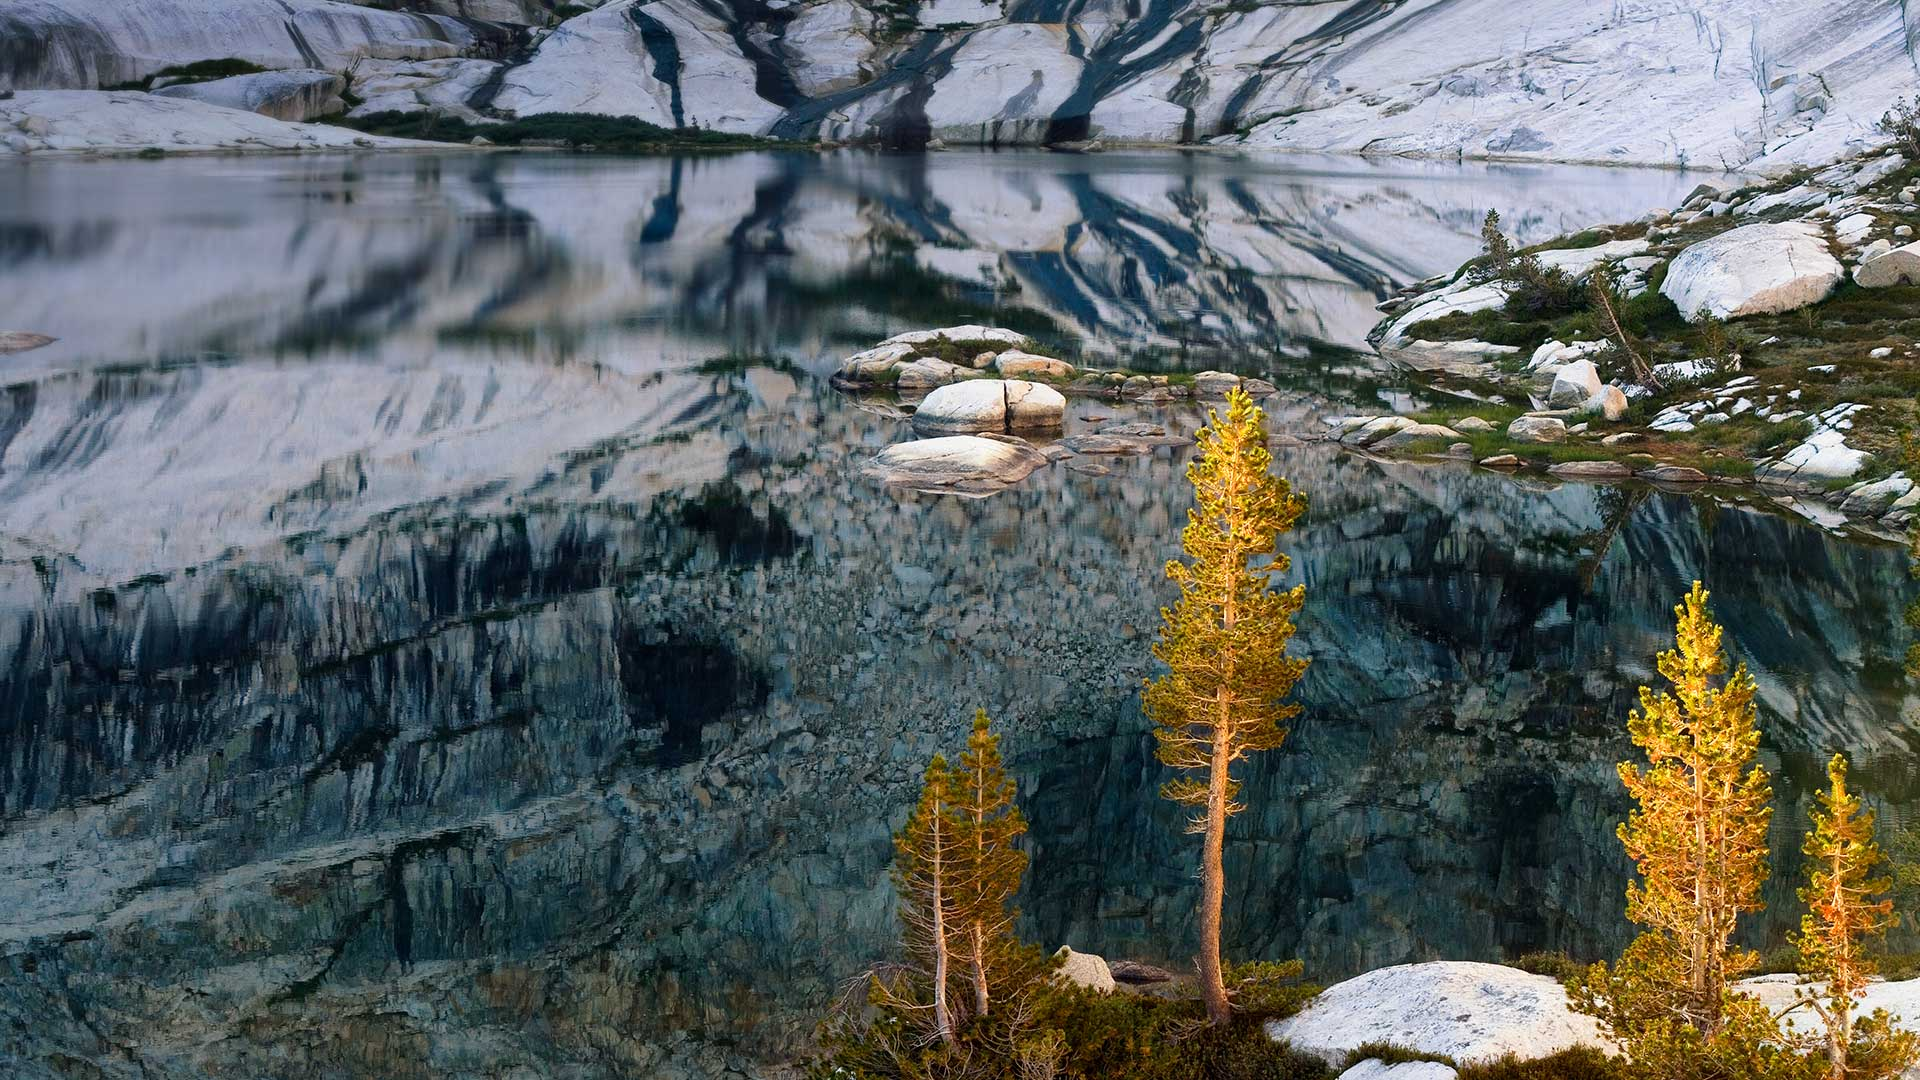 Pear Lake in Sequoia National Park, California (© Marc Muench/Tandem Stills + Motion)